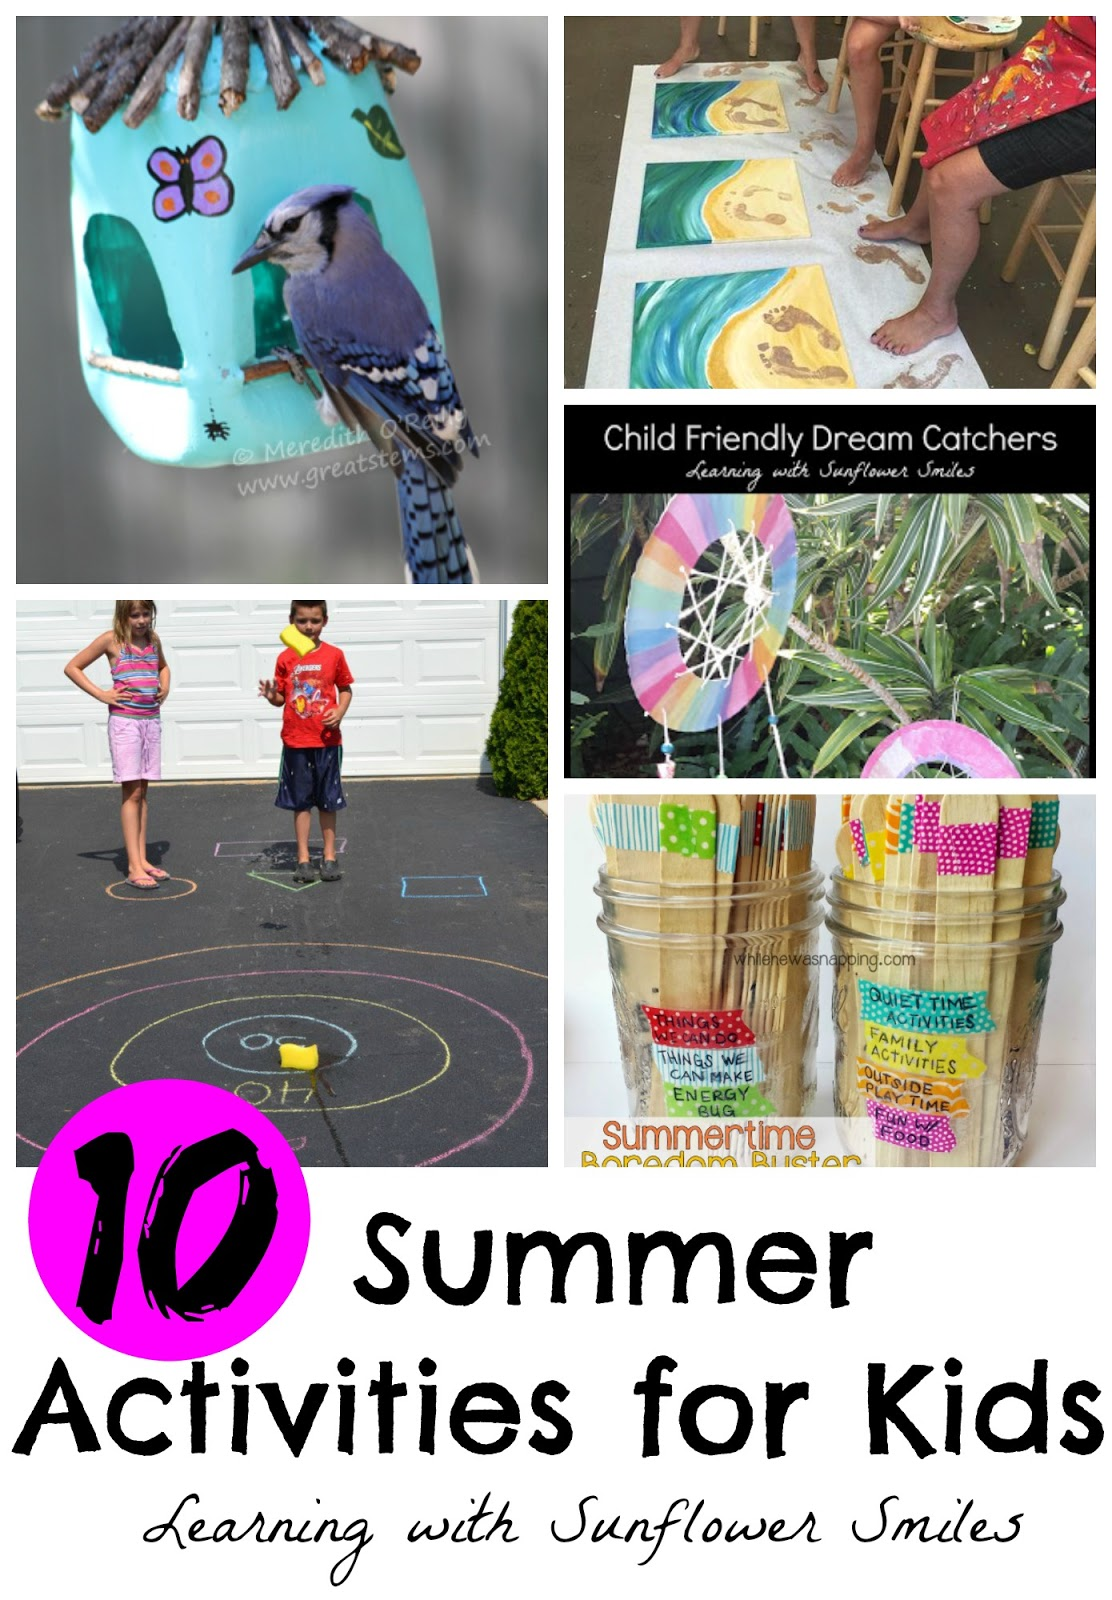 Learning with Sunflower Smiles: 10 Summer Fun Activities for the Kids